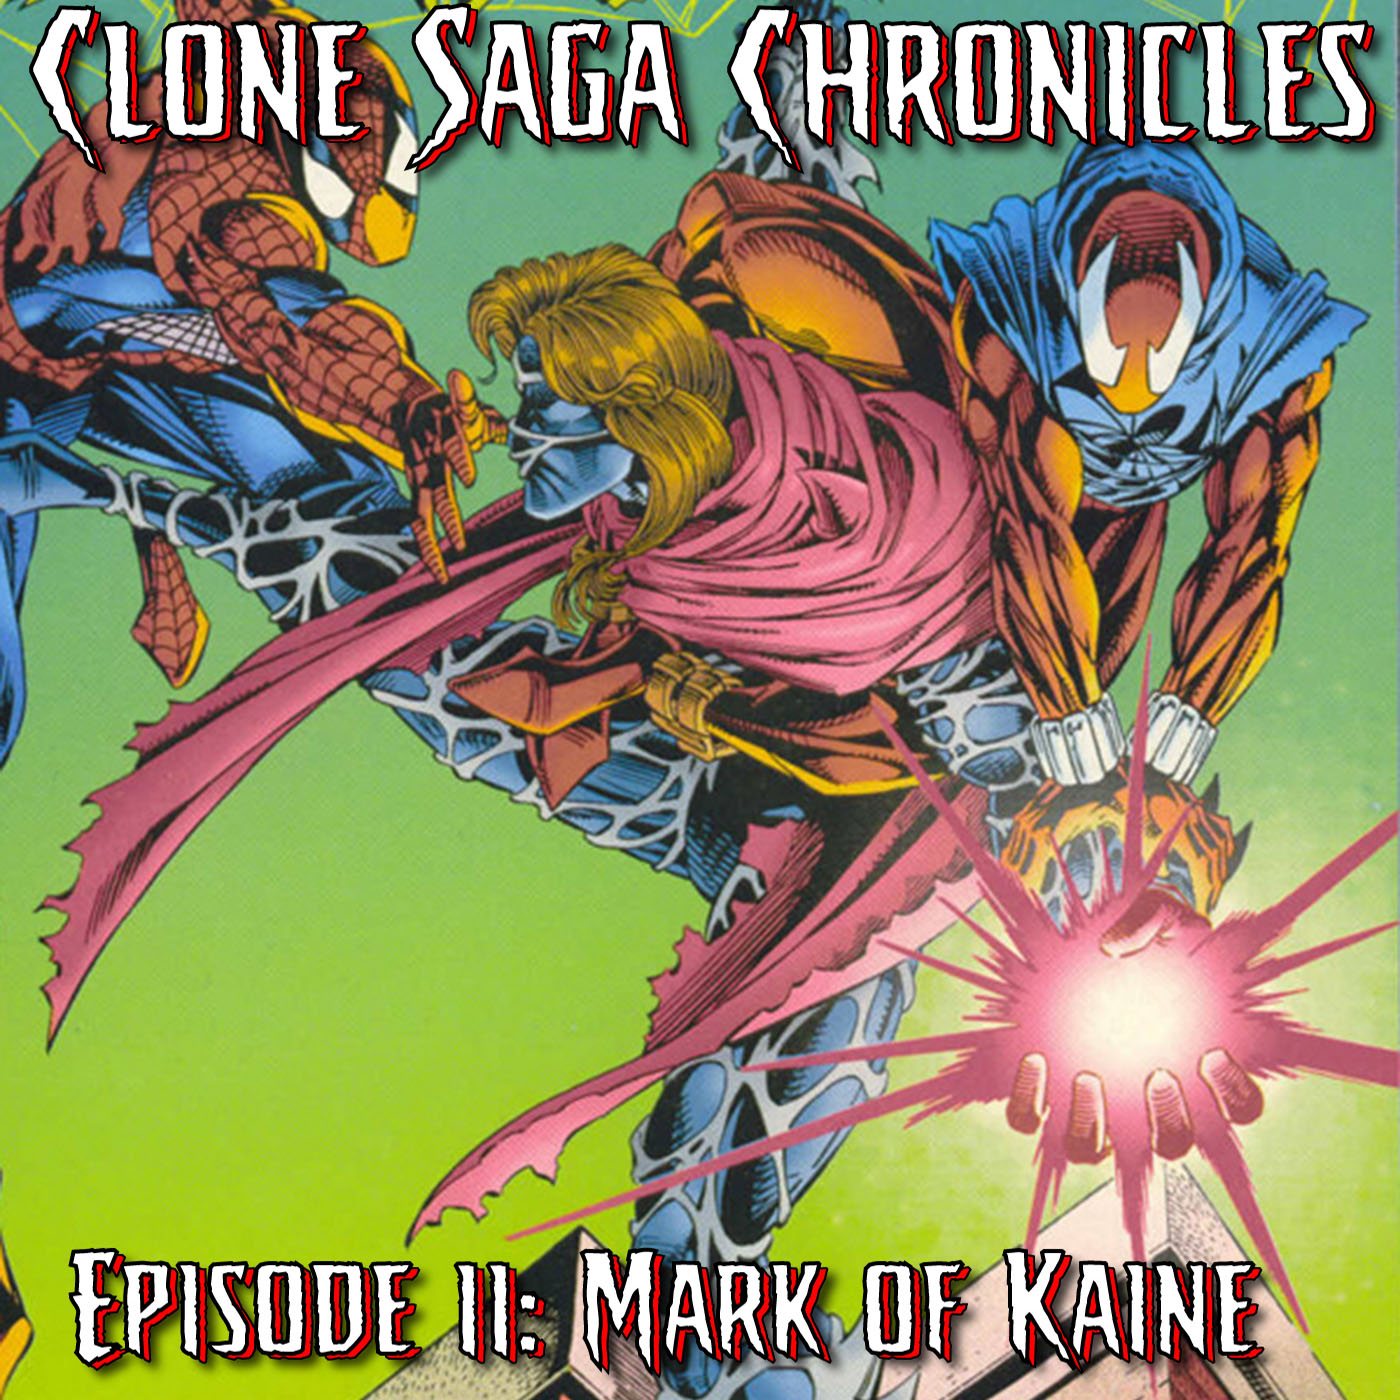 CSC Episode 11: The Mark of Kaine (Cover Date May 1995) & Real Clone Saga 6 of 6